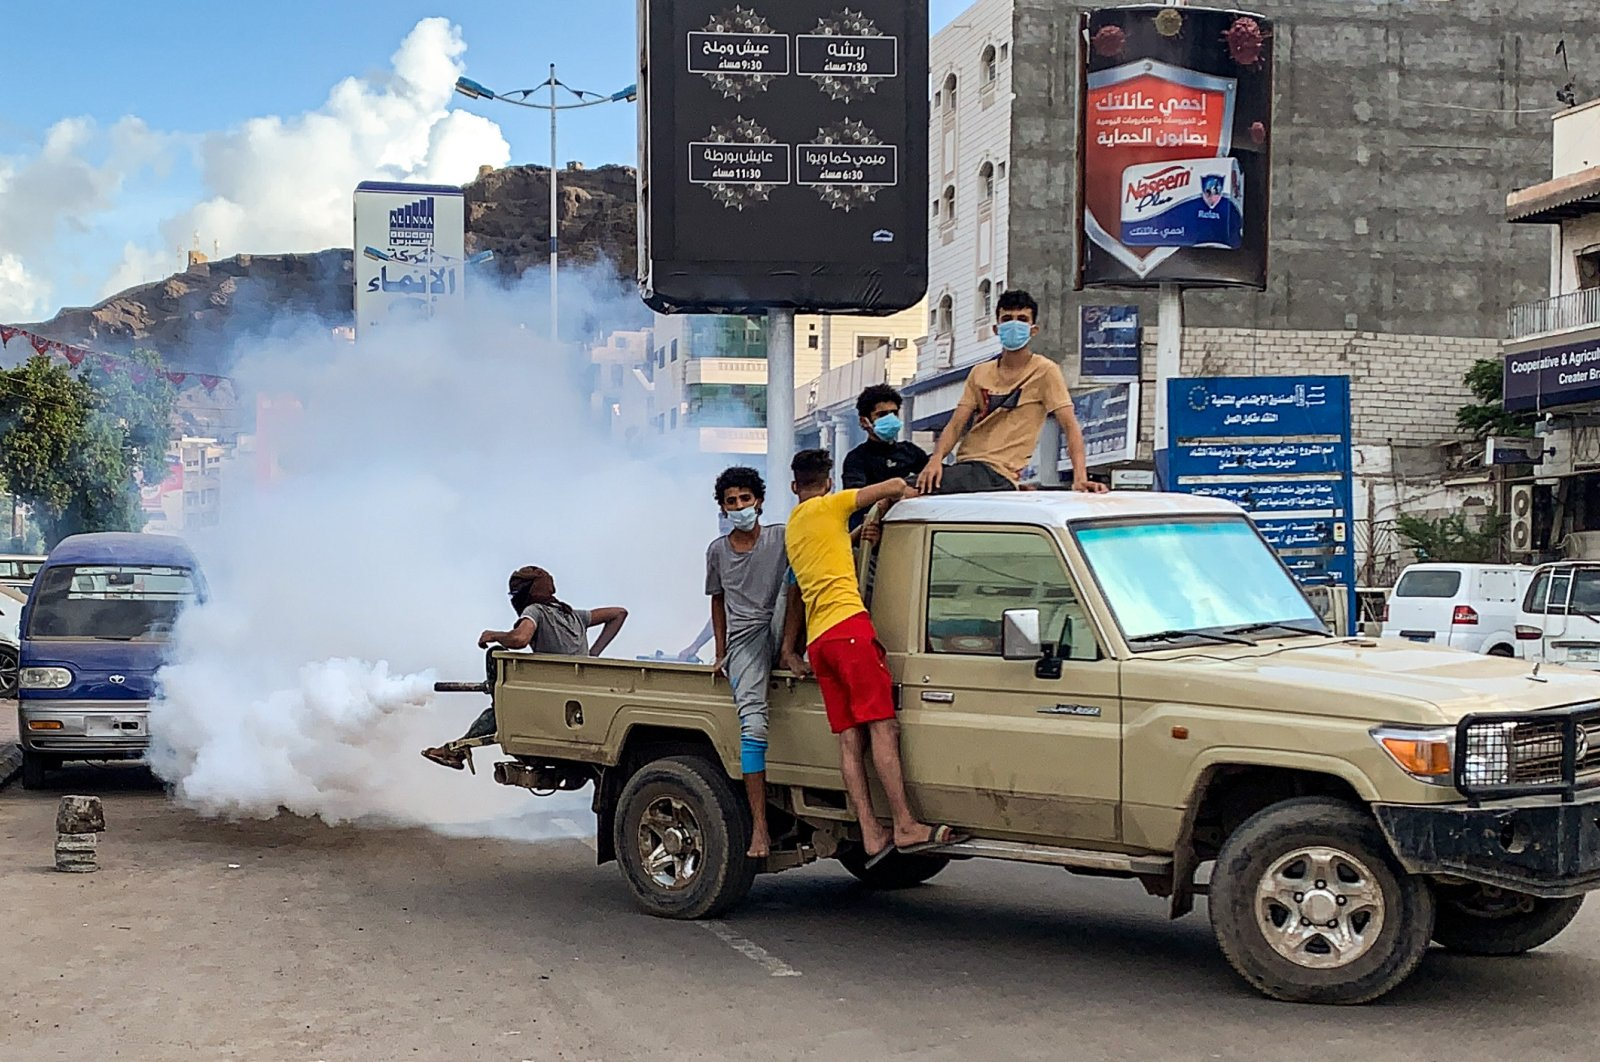 Youths wearing masks as a precaution due to COVID-19 coronavirus disease, sit in the back of a truck carrying out fumigation in an area in Yemen's southern coastal city of Aden, May 5, 2020.  (AFP)